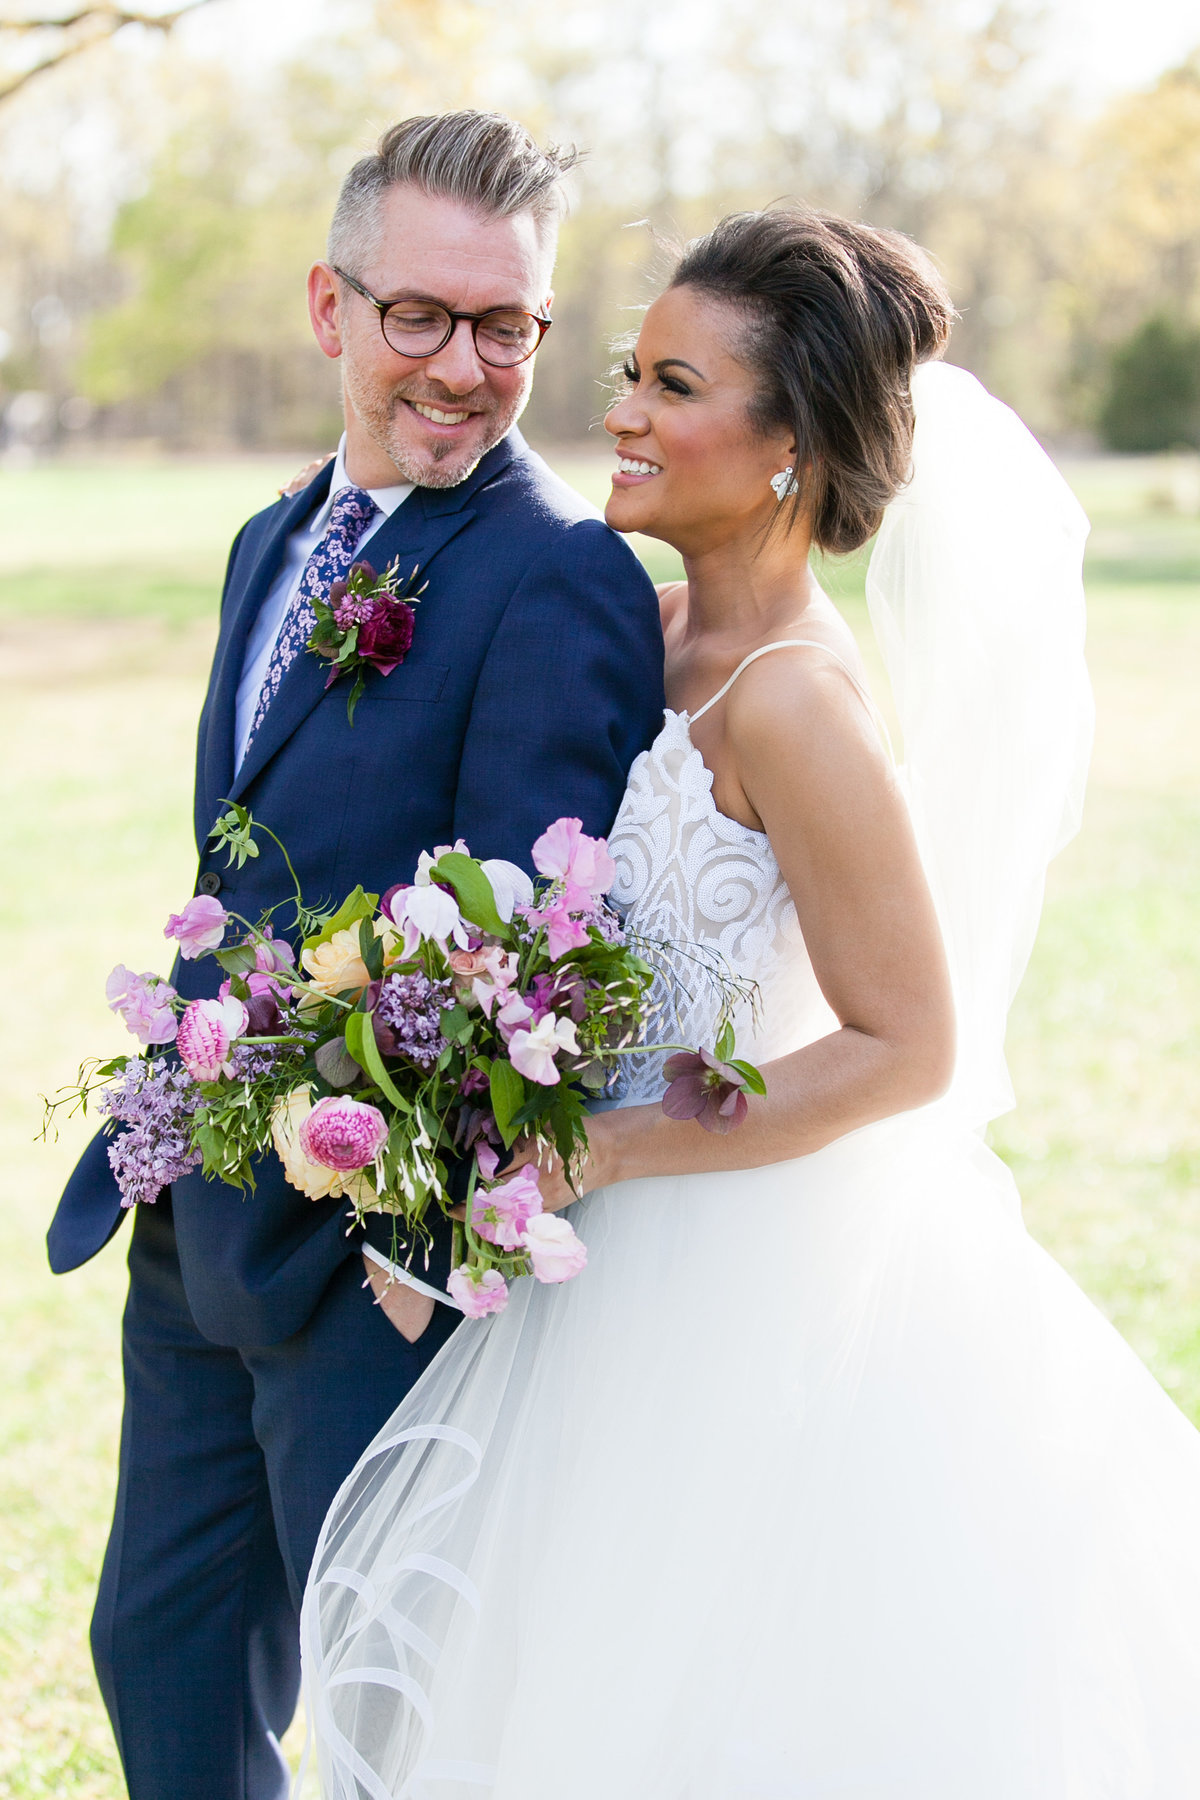 Romantic Spring Elopement  bride and groom photo  at The White Sparrow Barn in Dallas Texas  by Amy Britton Photography Photographer in St. Louis